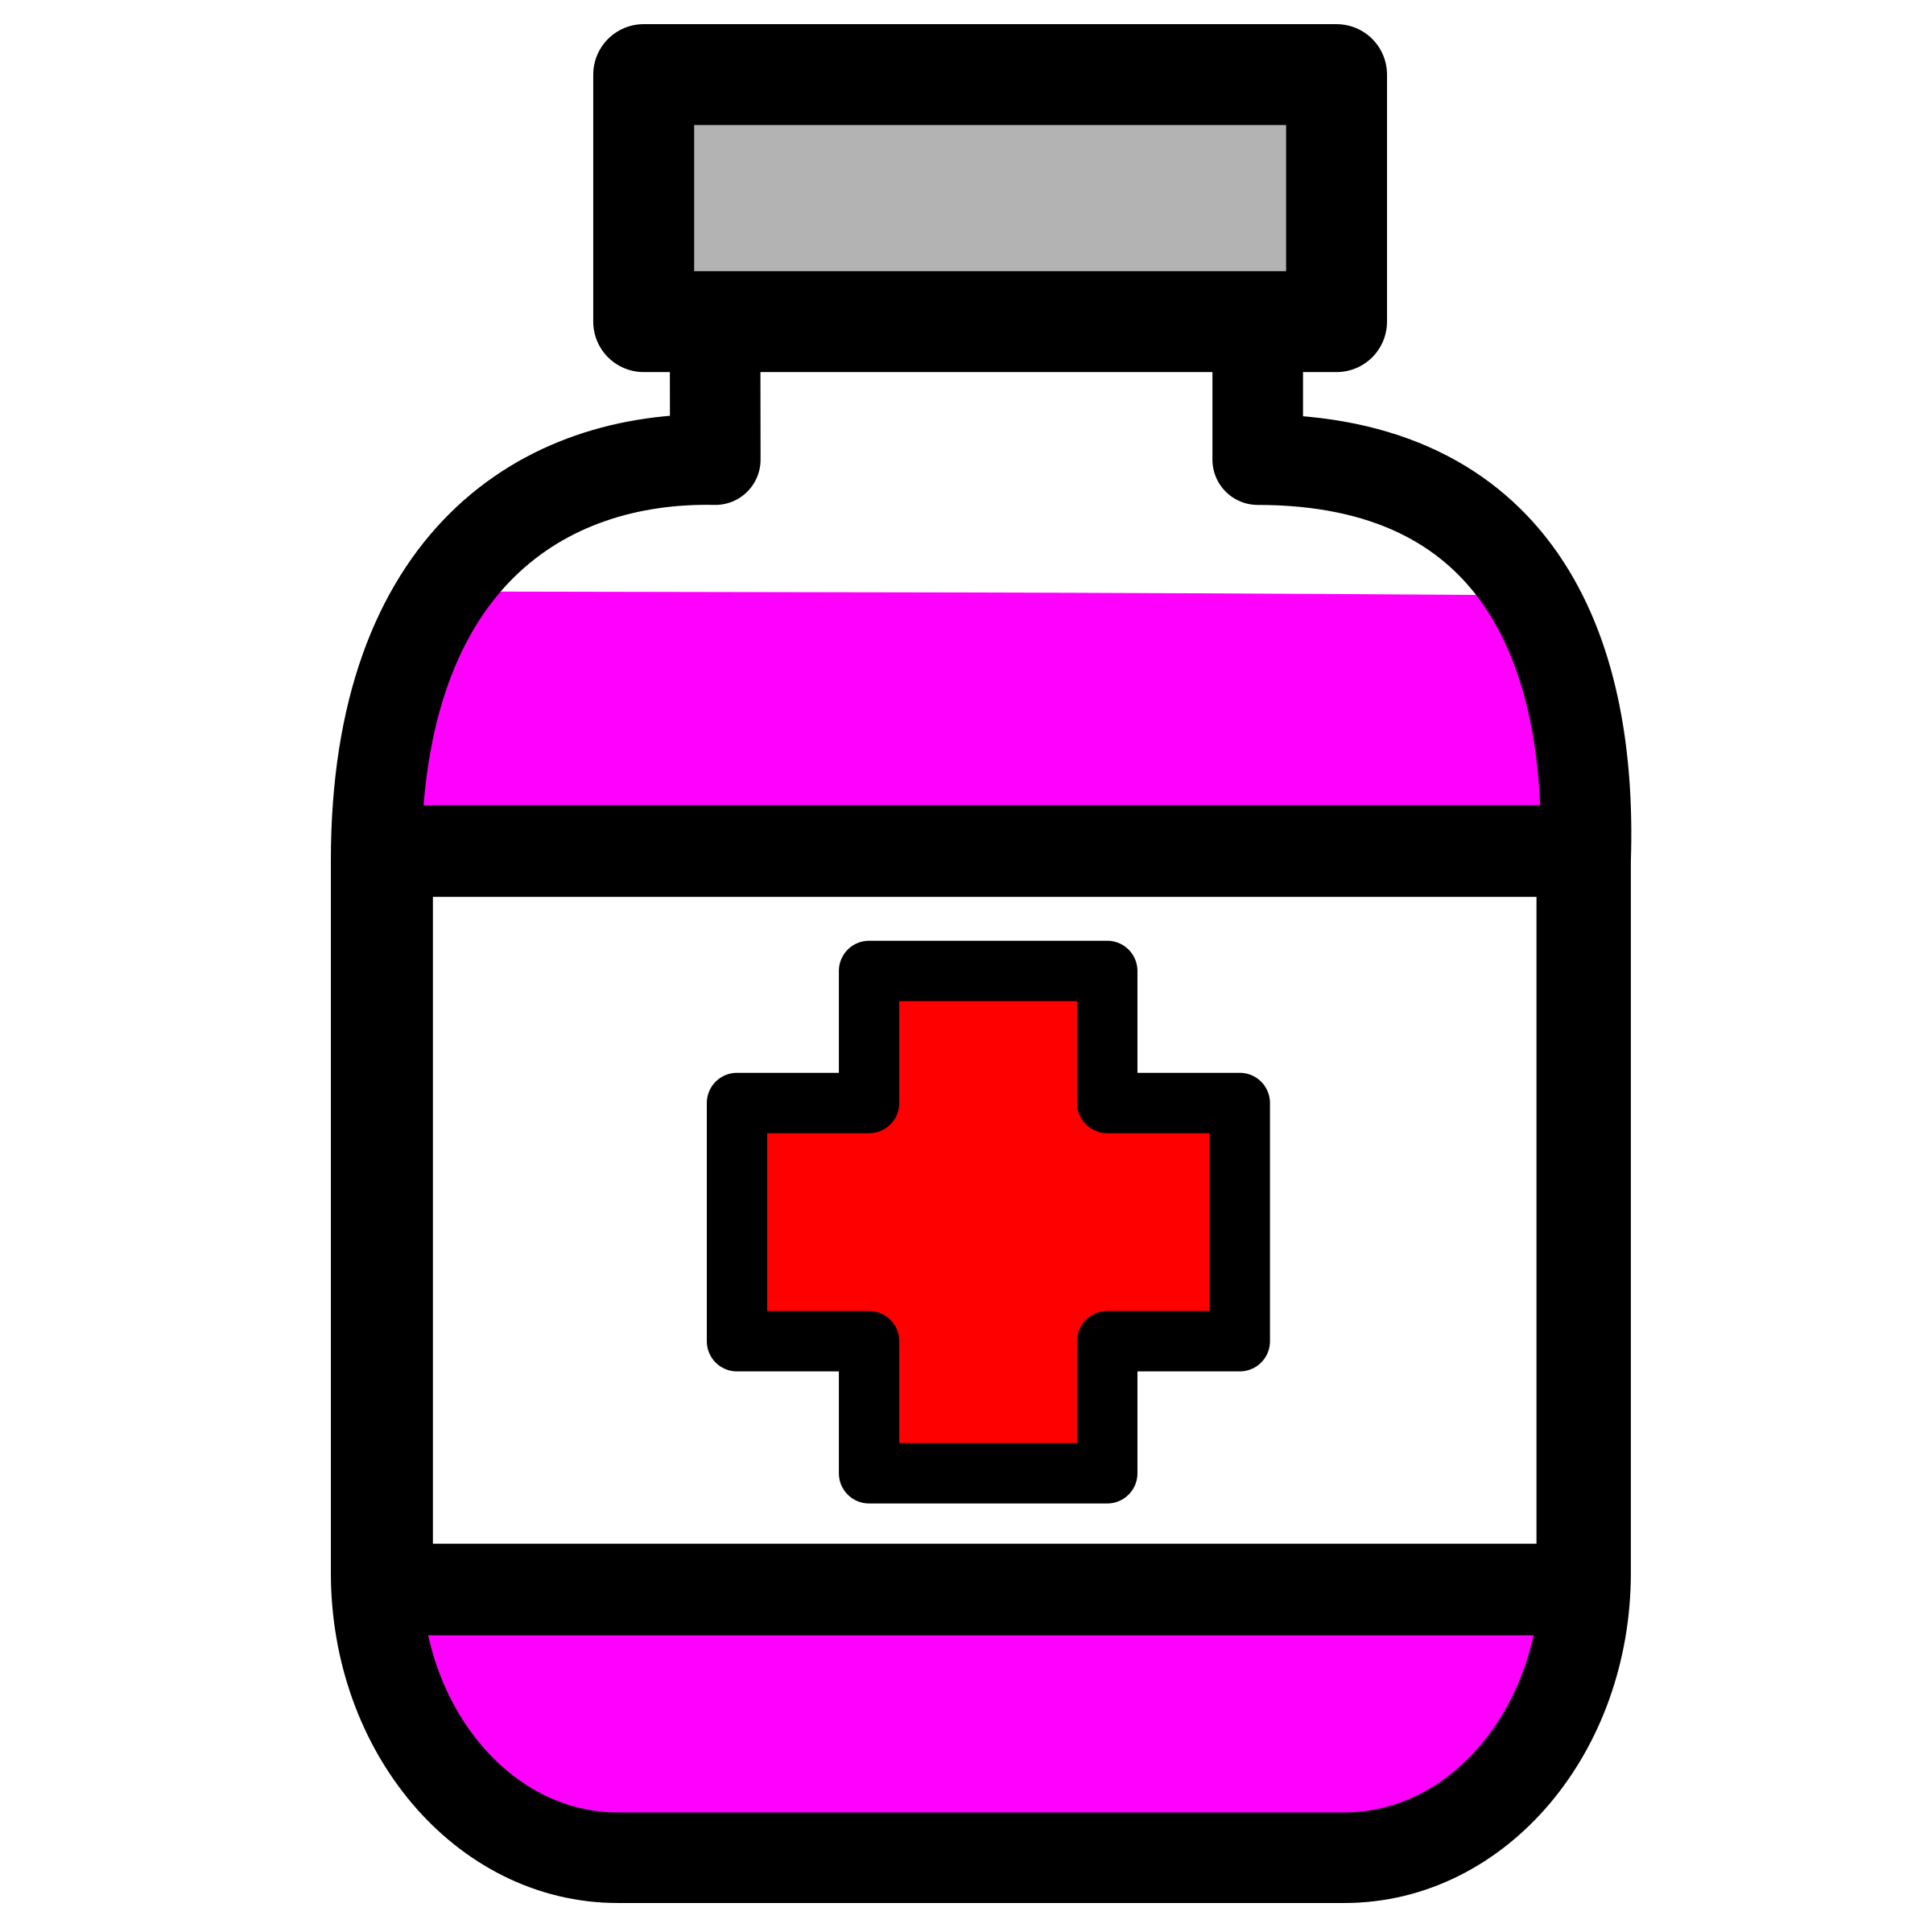 Medicine icon by pitr